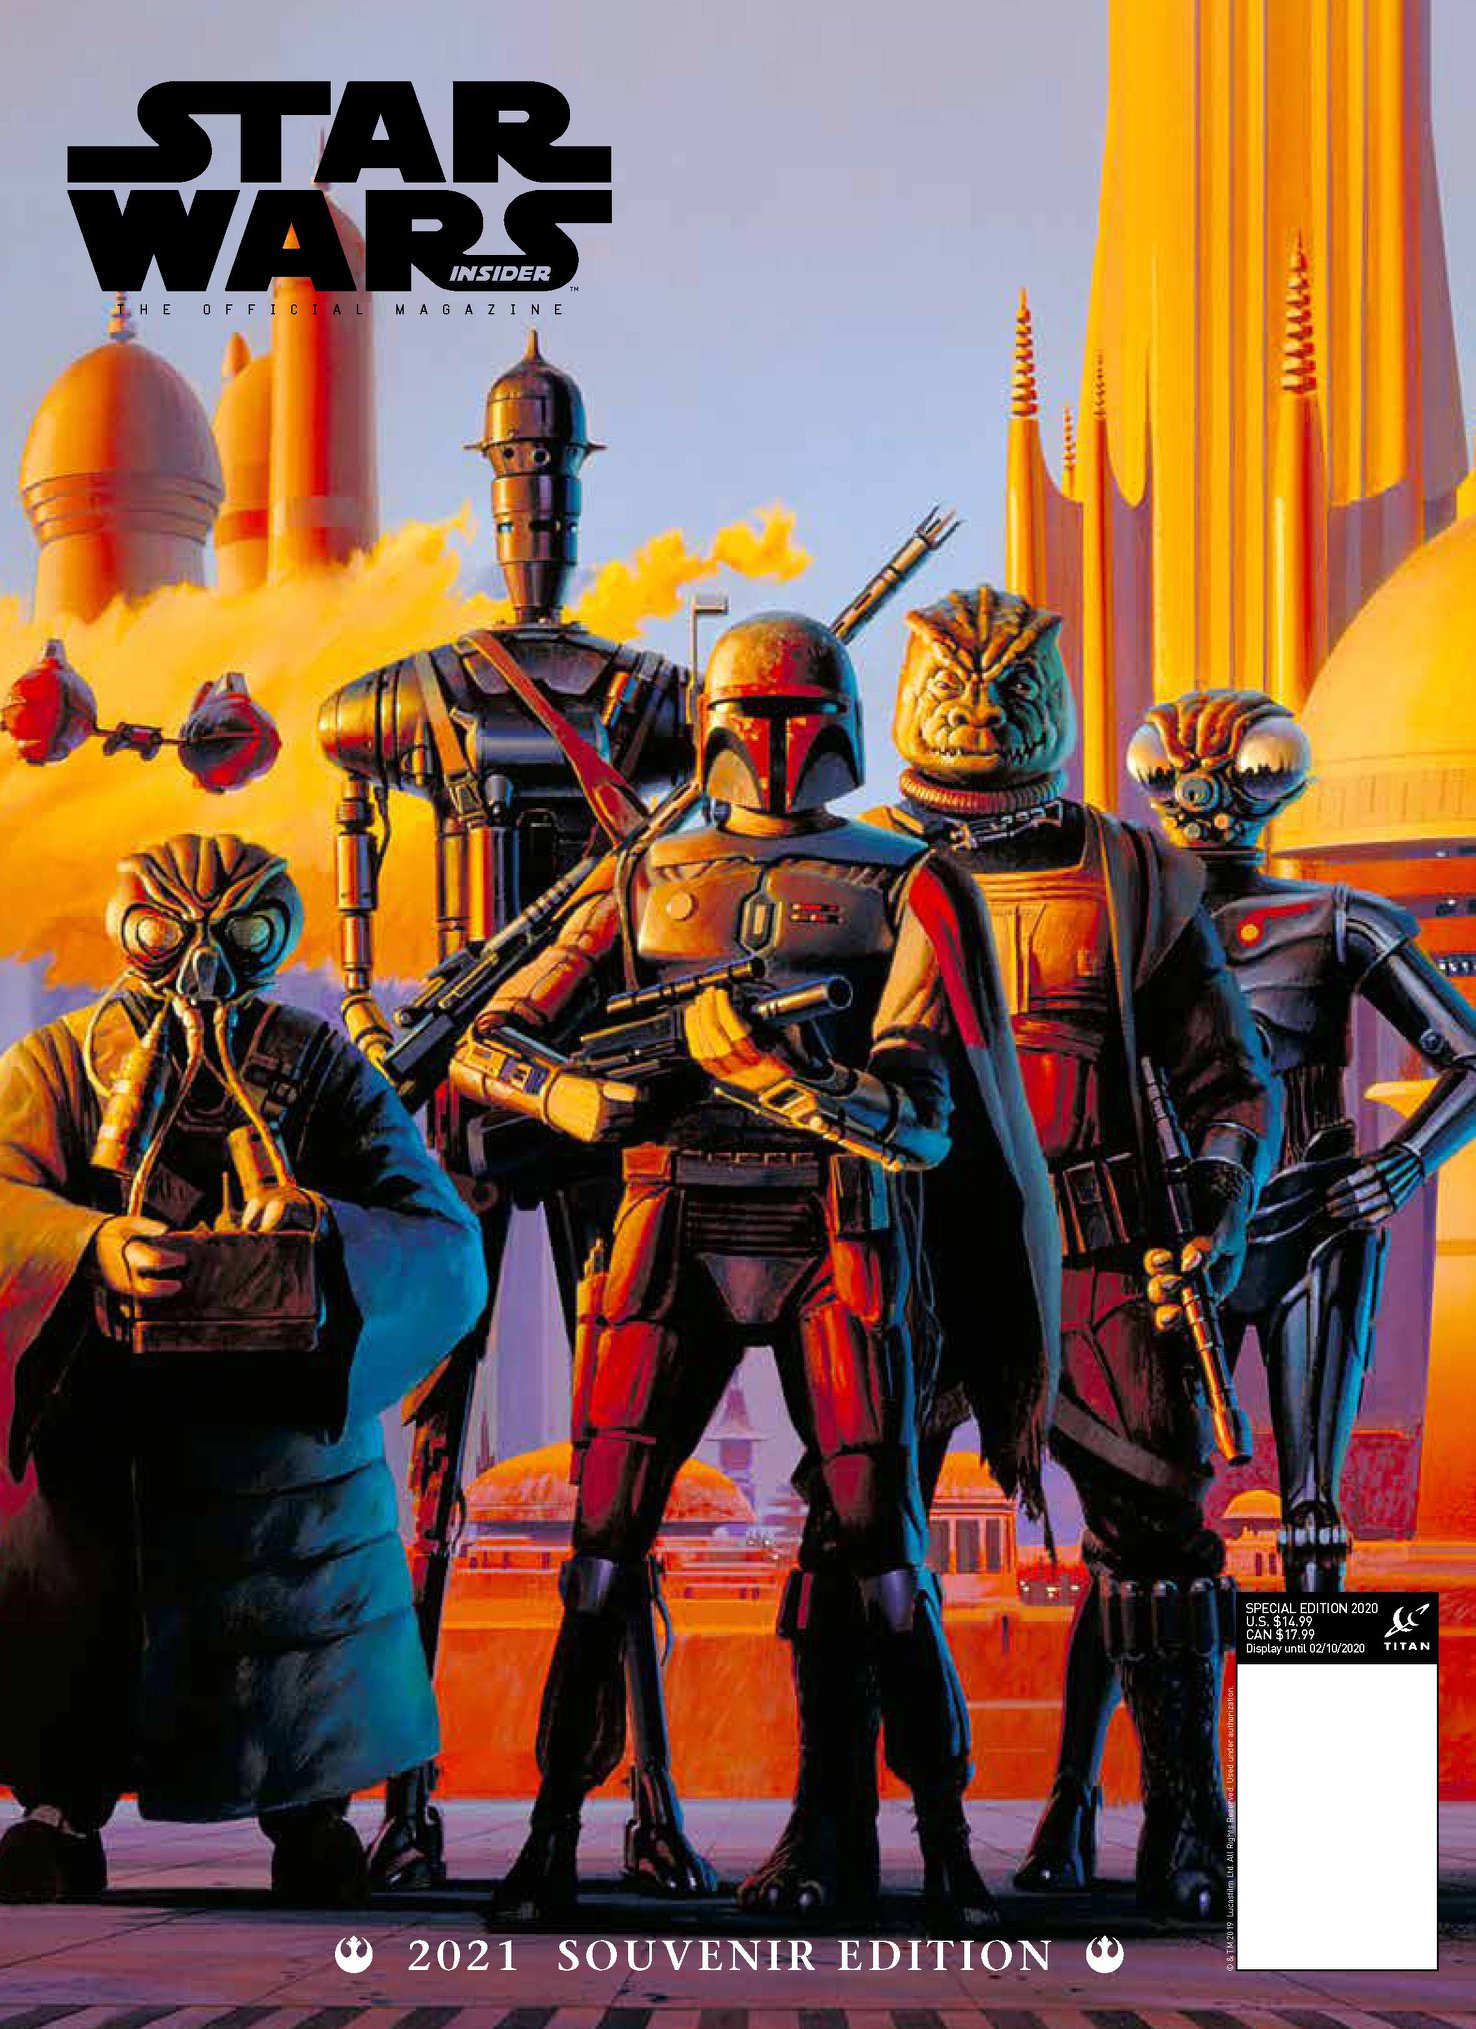 Star Wars Insider Souvenir Edition 2021